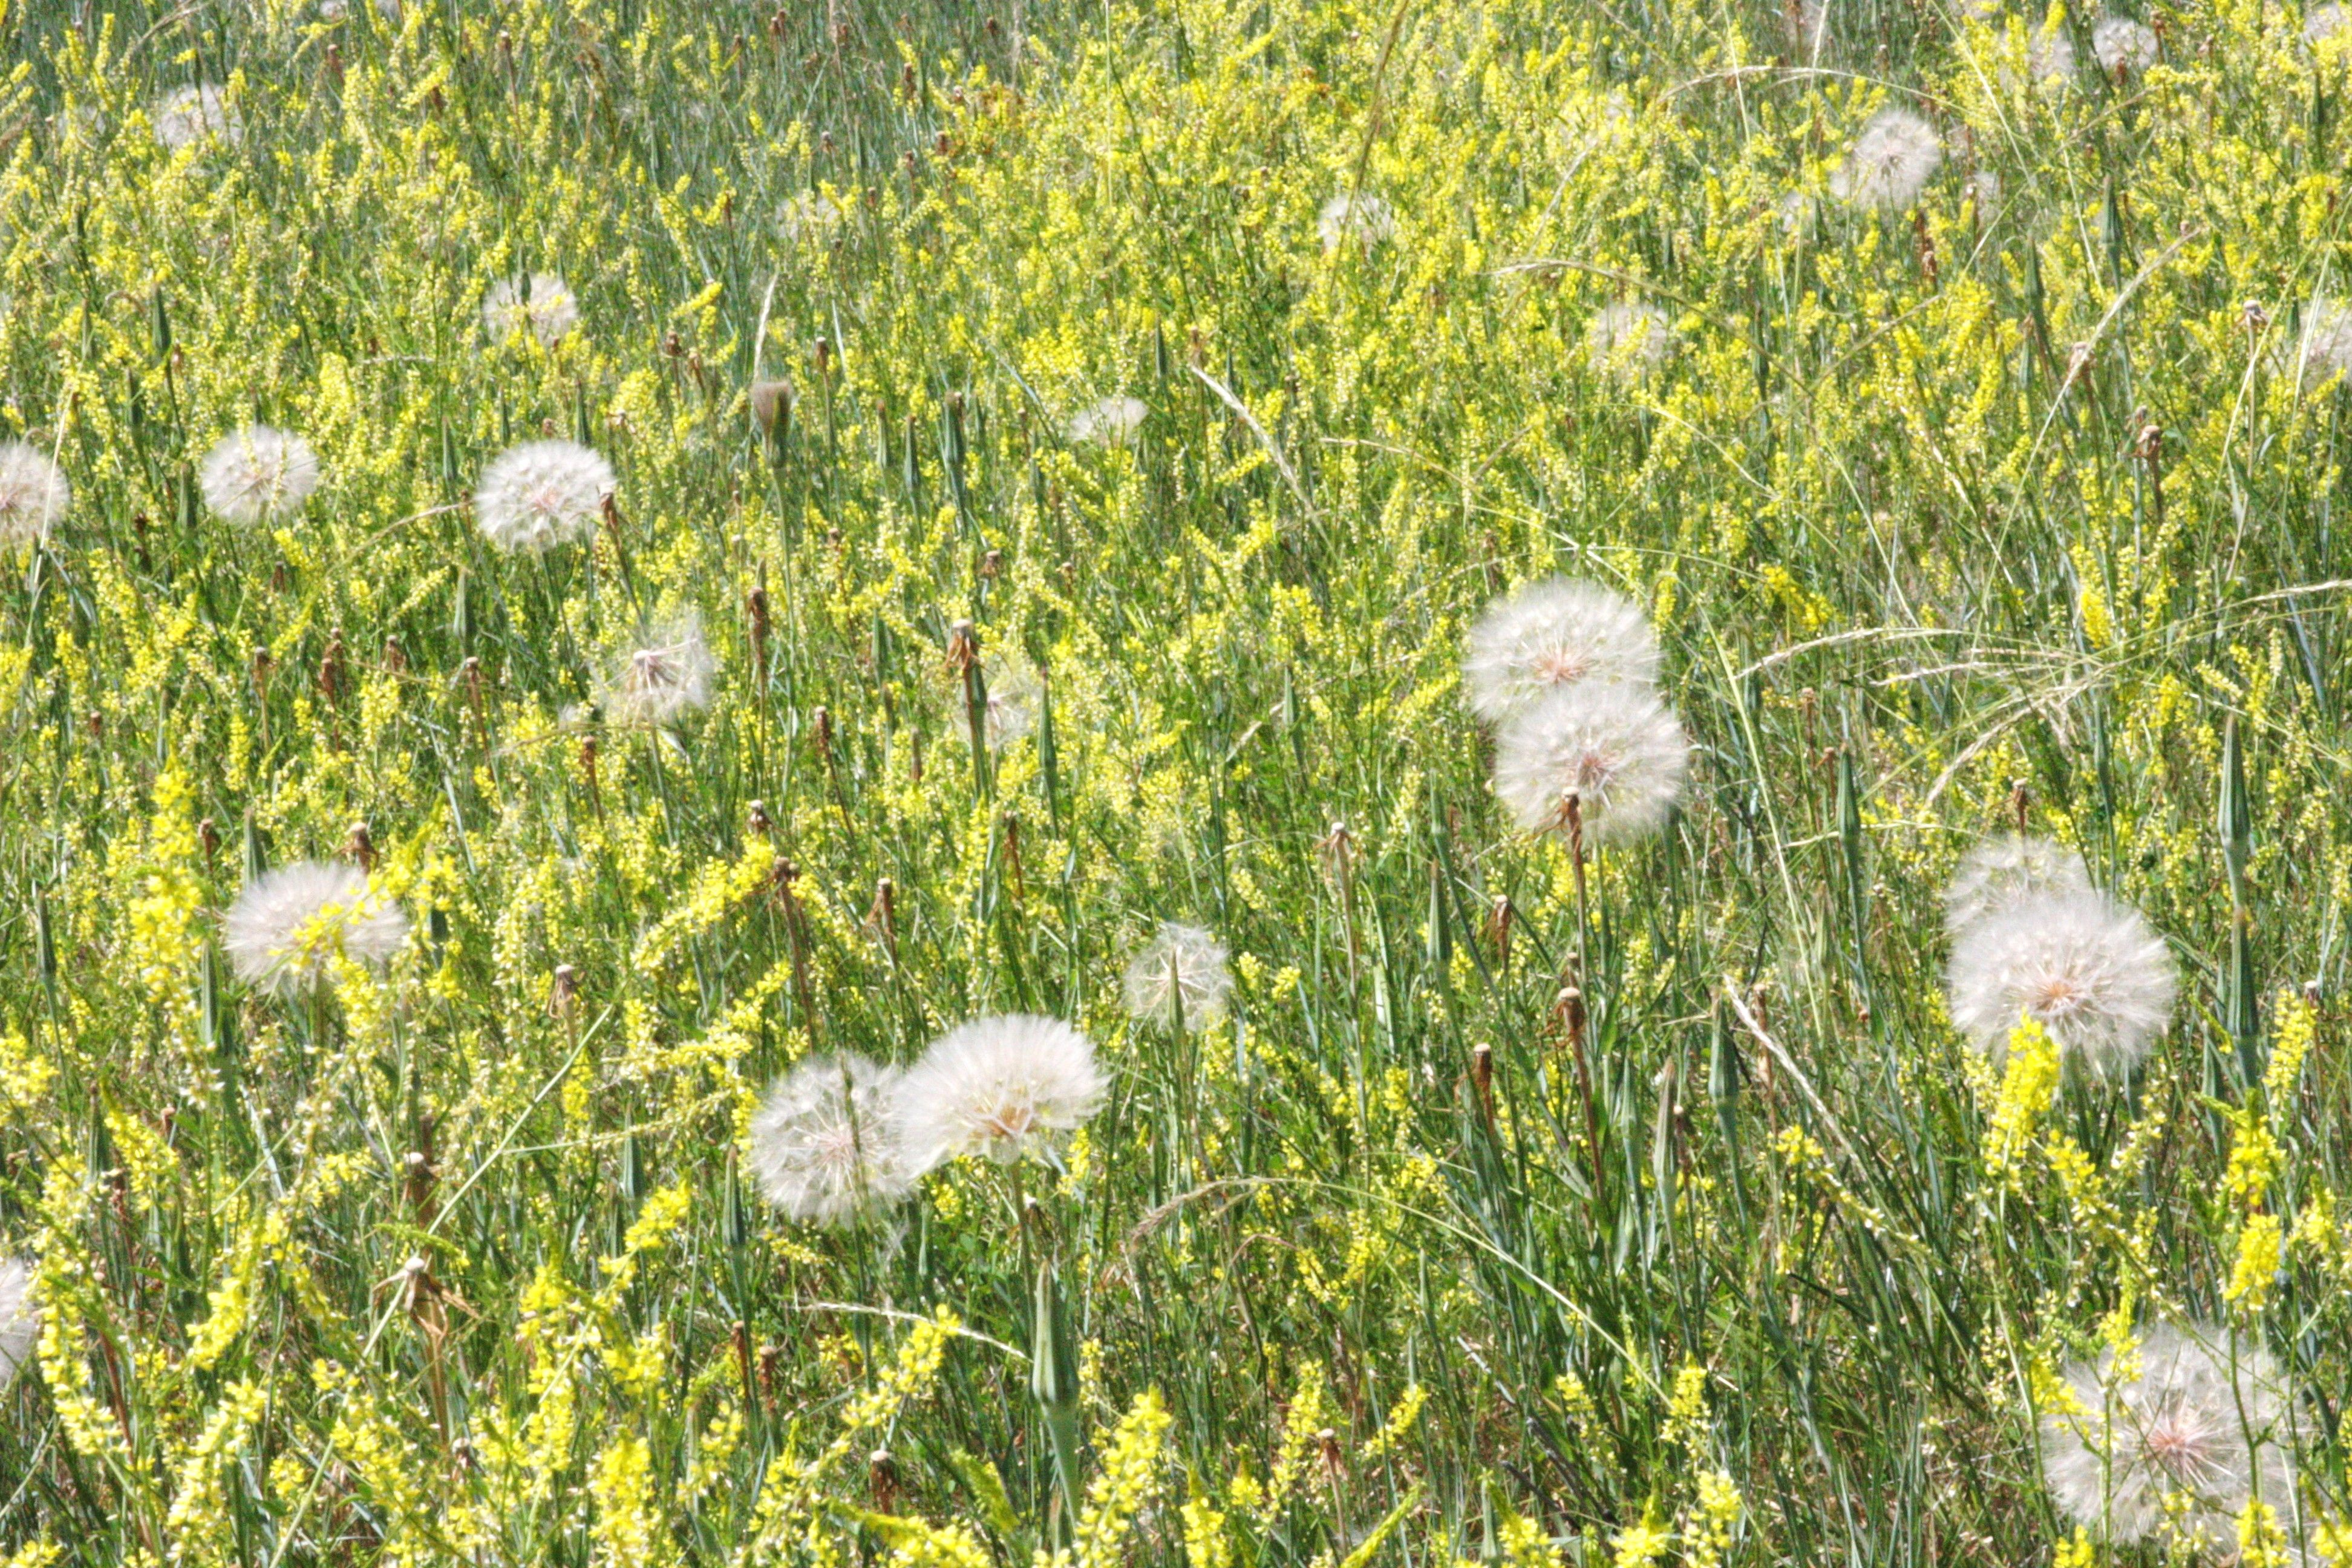 Goats Beard Seed Heads Tragopogon Pratensis With Yellow Sweet